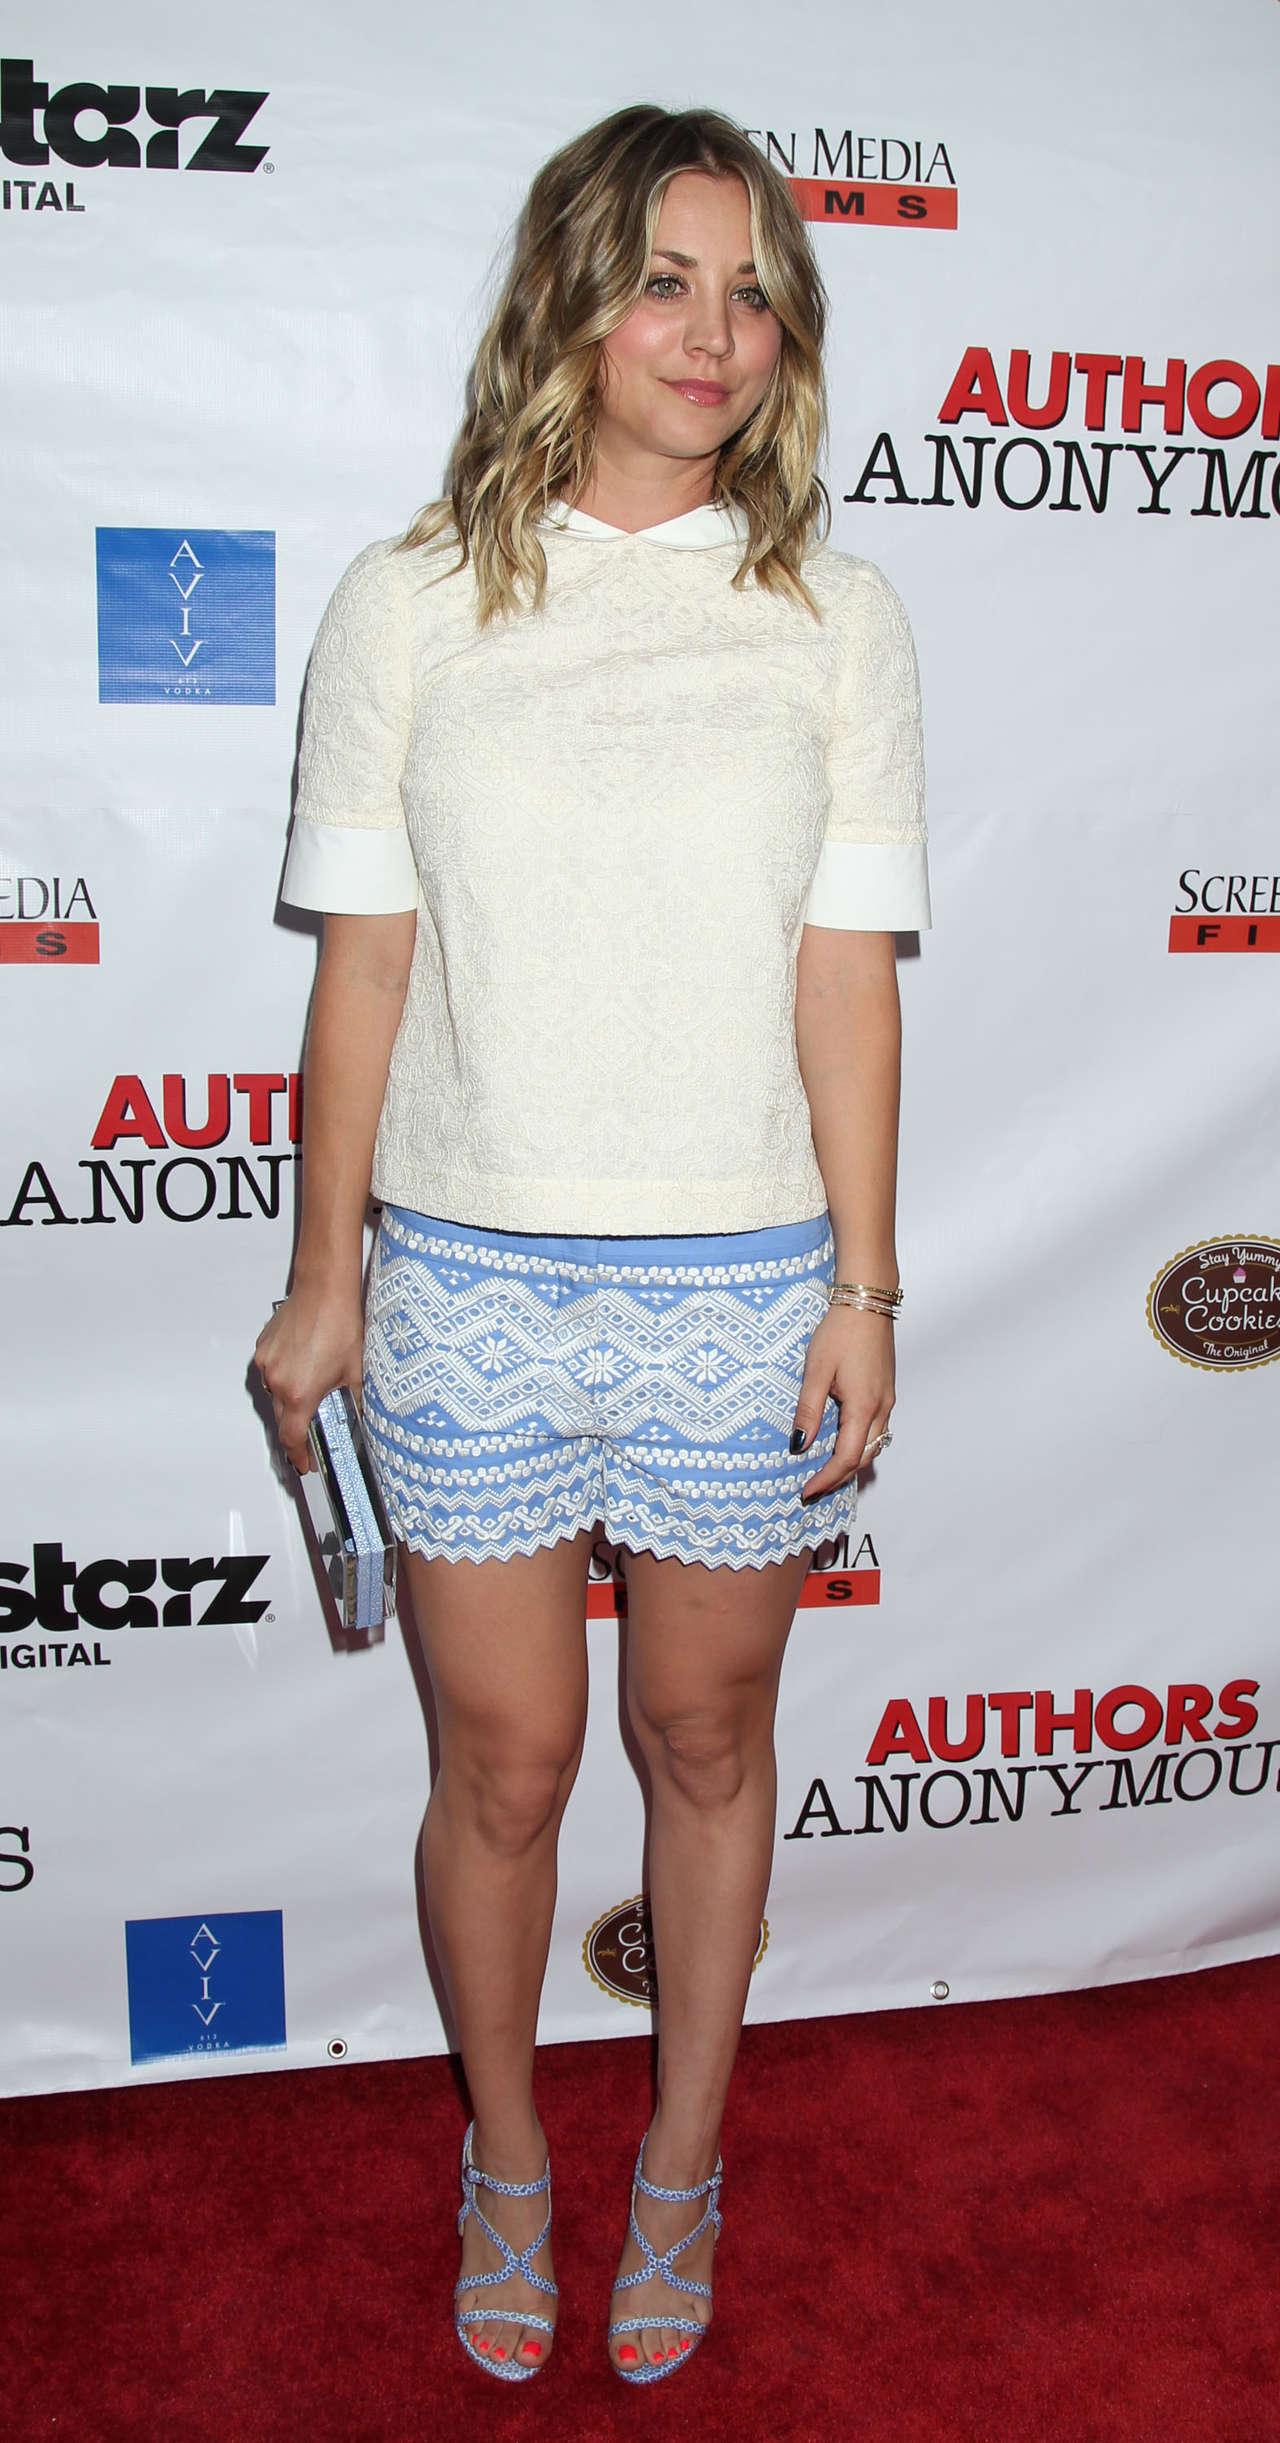 Back to FULL gallery Kaley Cuoco – Authors Anonymous premiere in LA